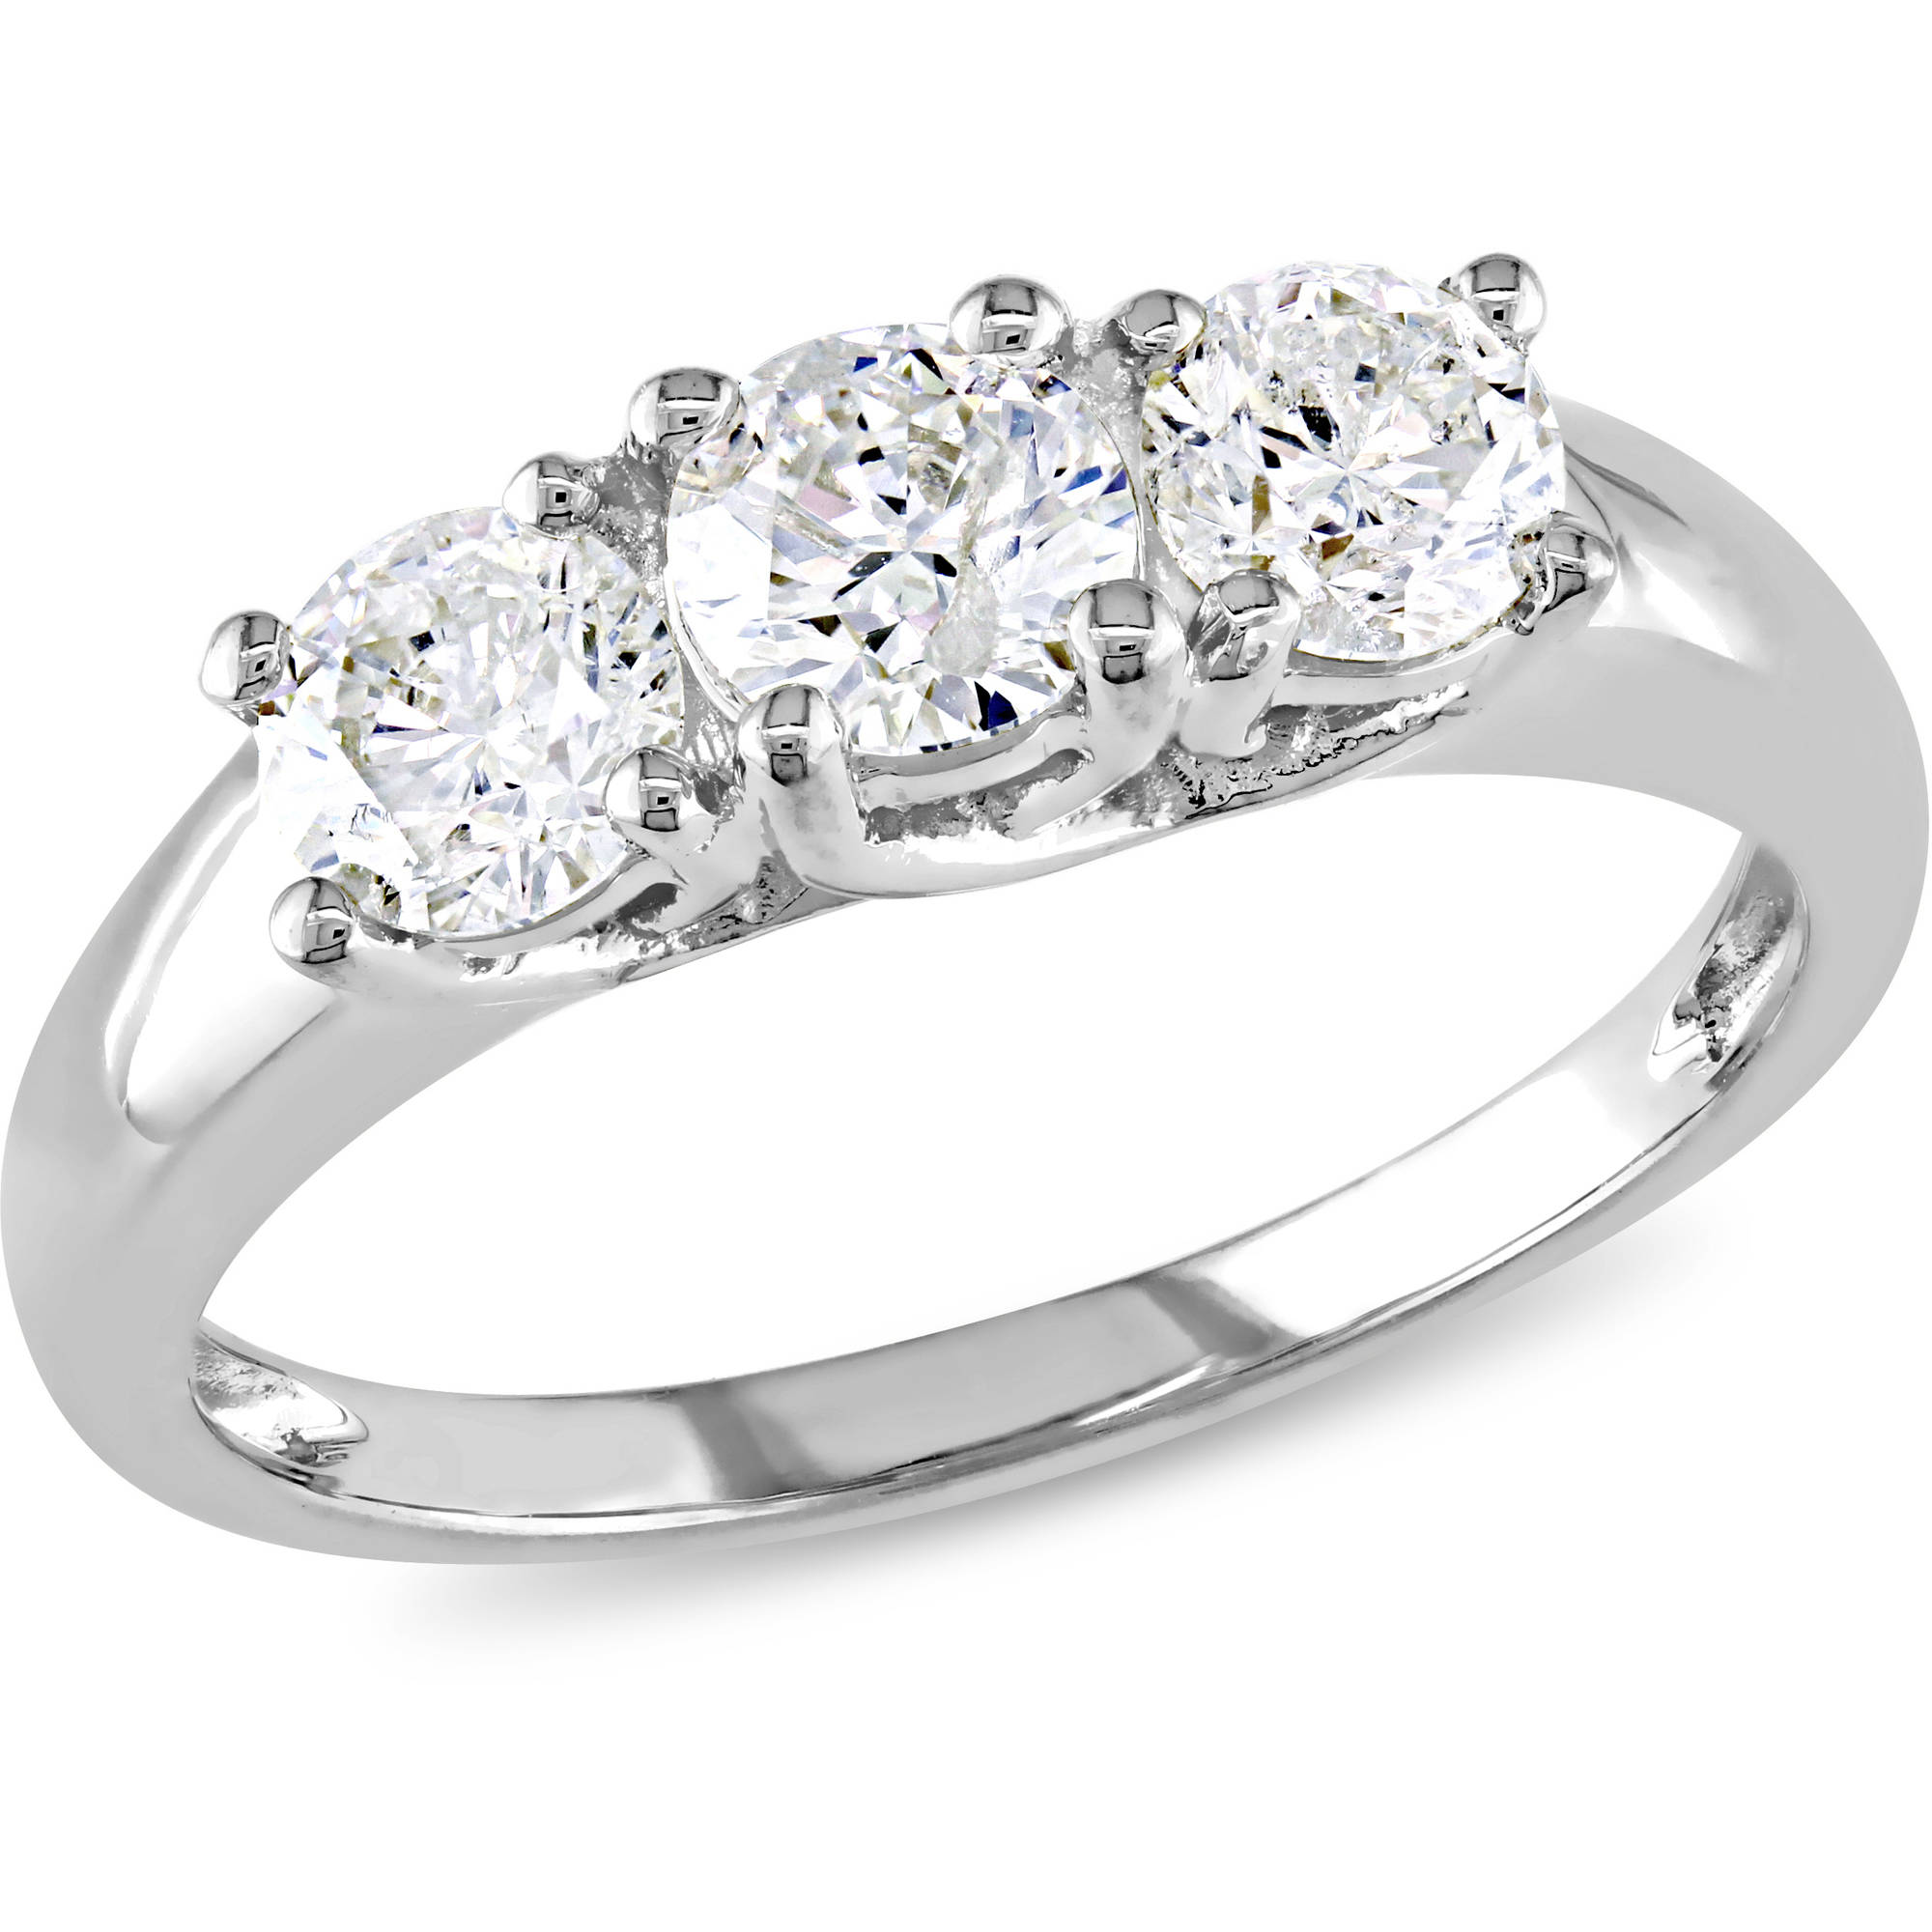 aurus are of t wedding ultimate that and picked beautifully made designs beautiful isn we ring dream our under the feed affordable rss diamond feedspot rings so engagement on have some